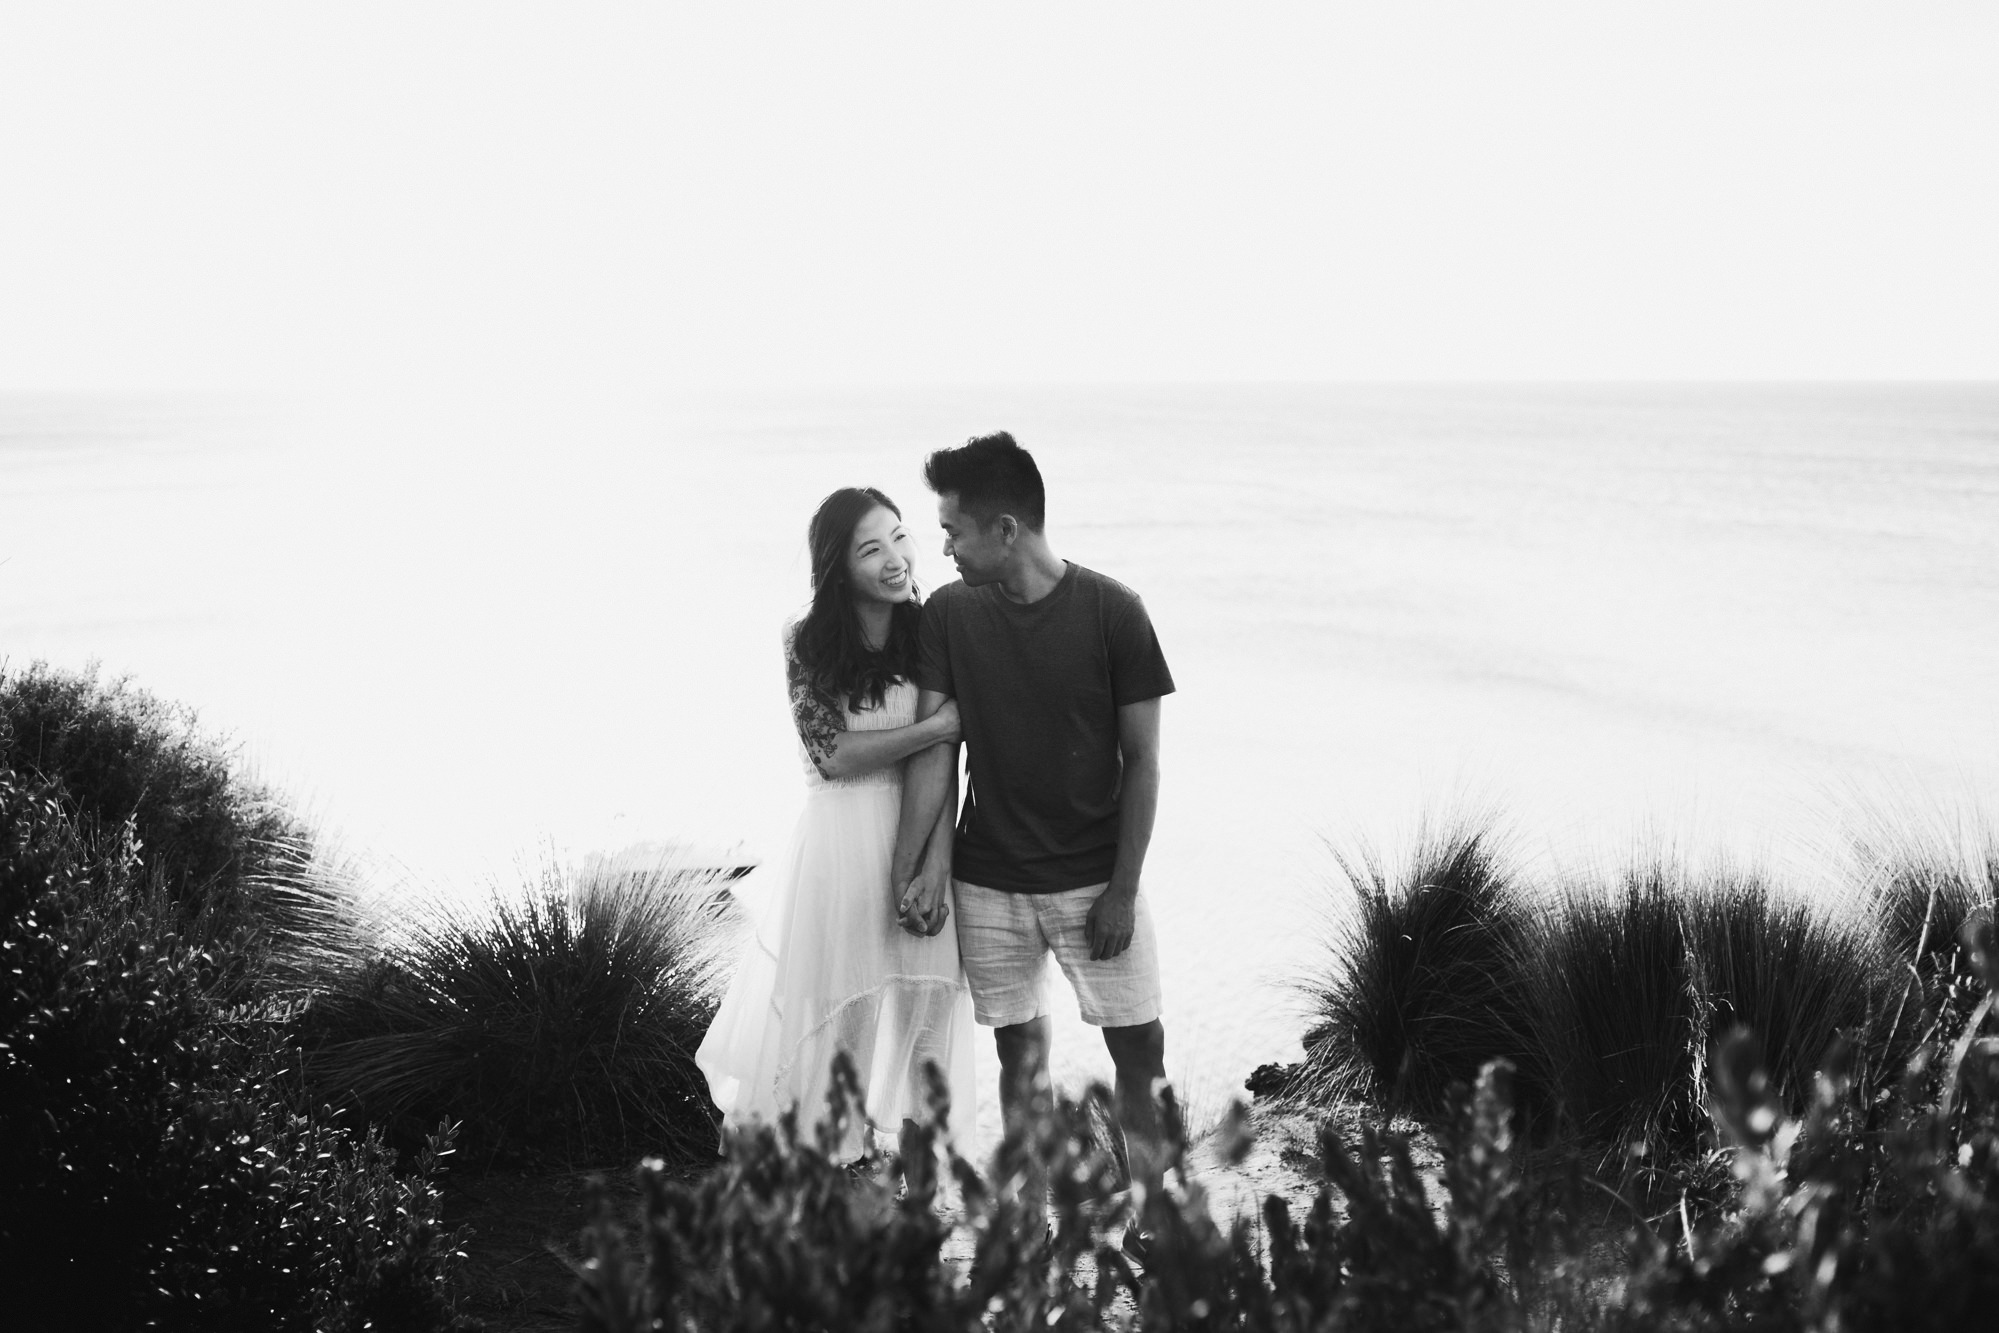 Mount Martha Natural Fun Candid Engagement Wedding Photography-21.jpg